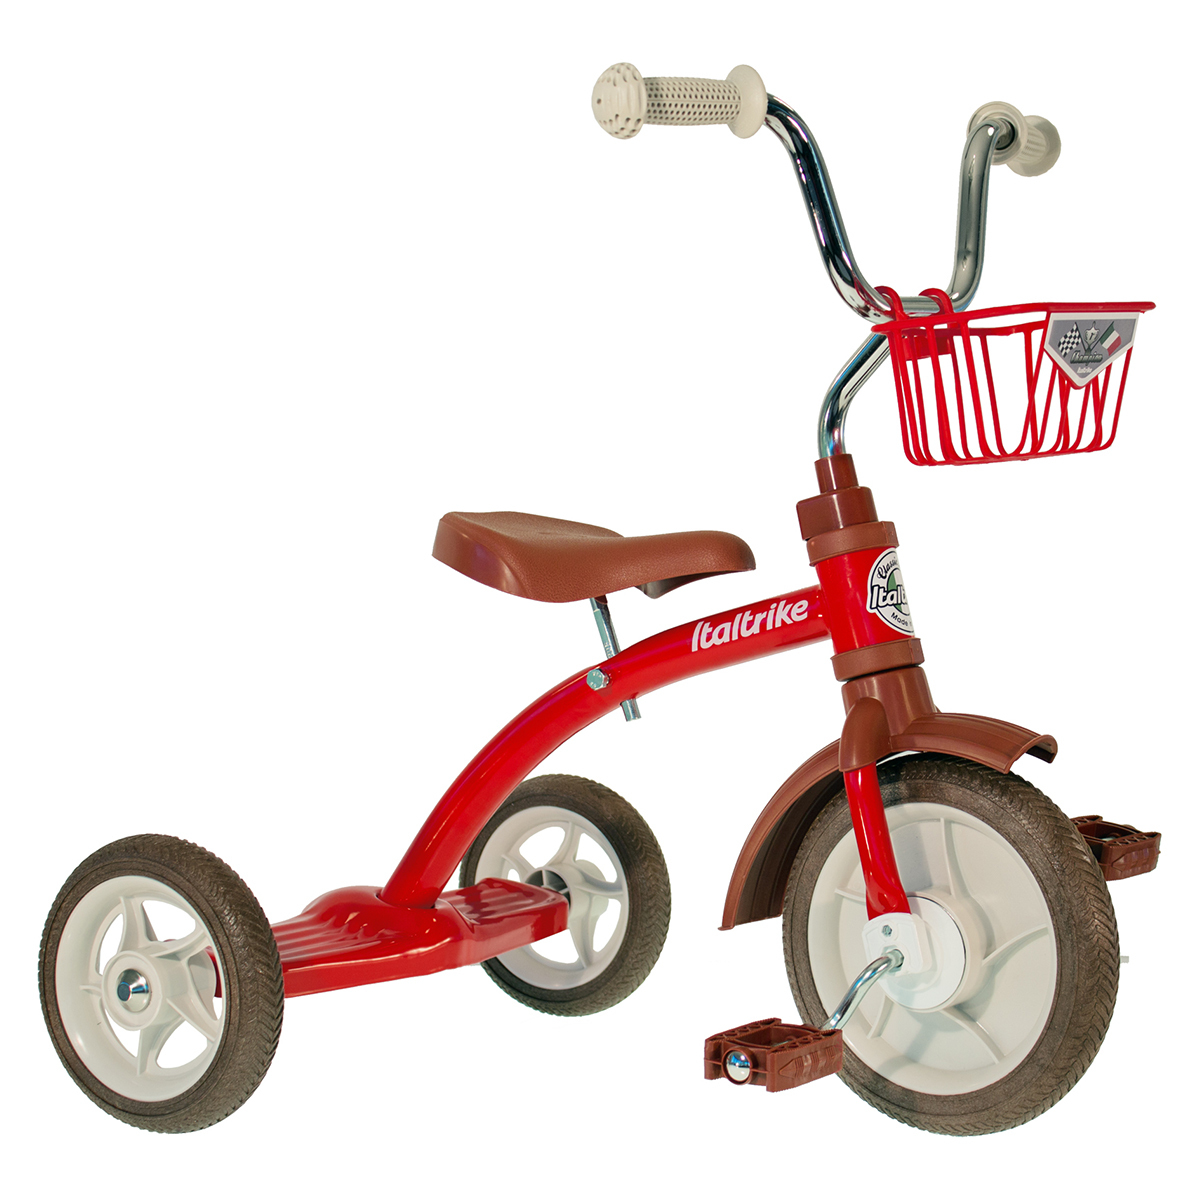 Trotteur & Porteur Tricycle Super Lucy Champion - Rouge Tricycle Super Lucy Champion - Rouge